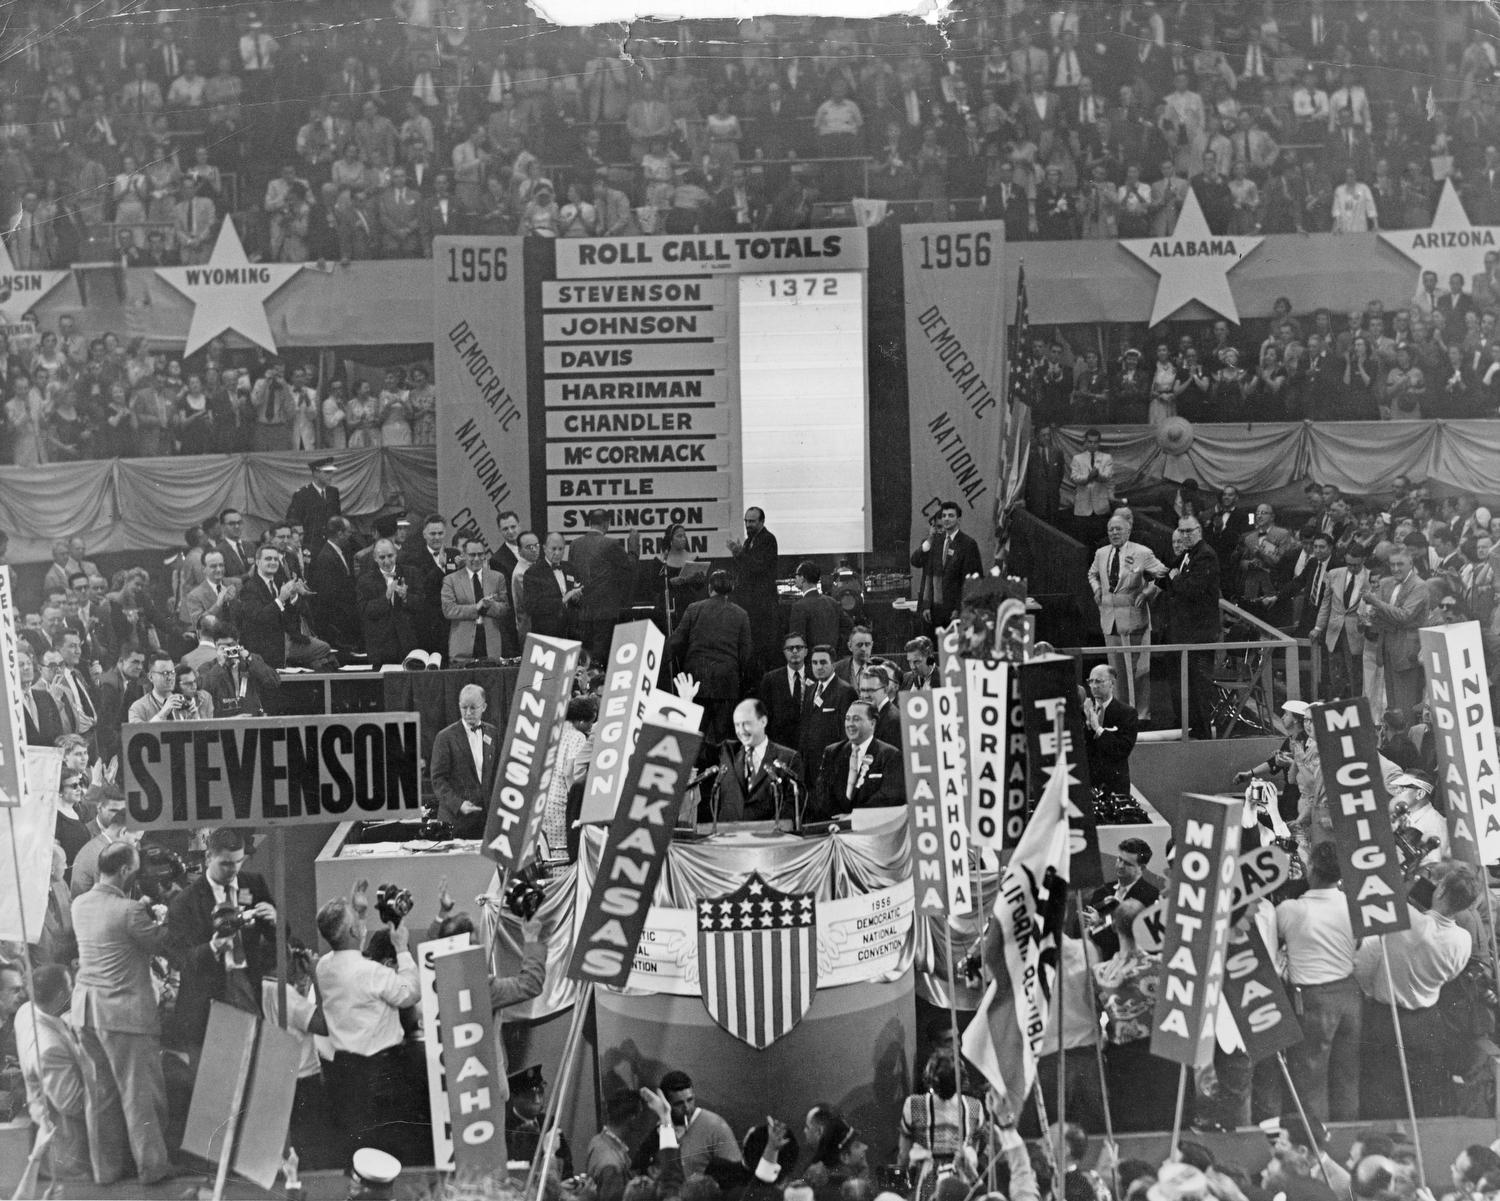 Adlai Stevenson II with Richard J. Daley on the podium at the Democratic National Convention in Chicago.